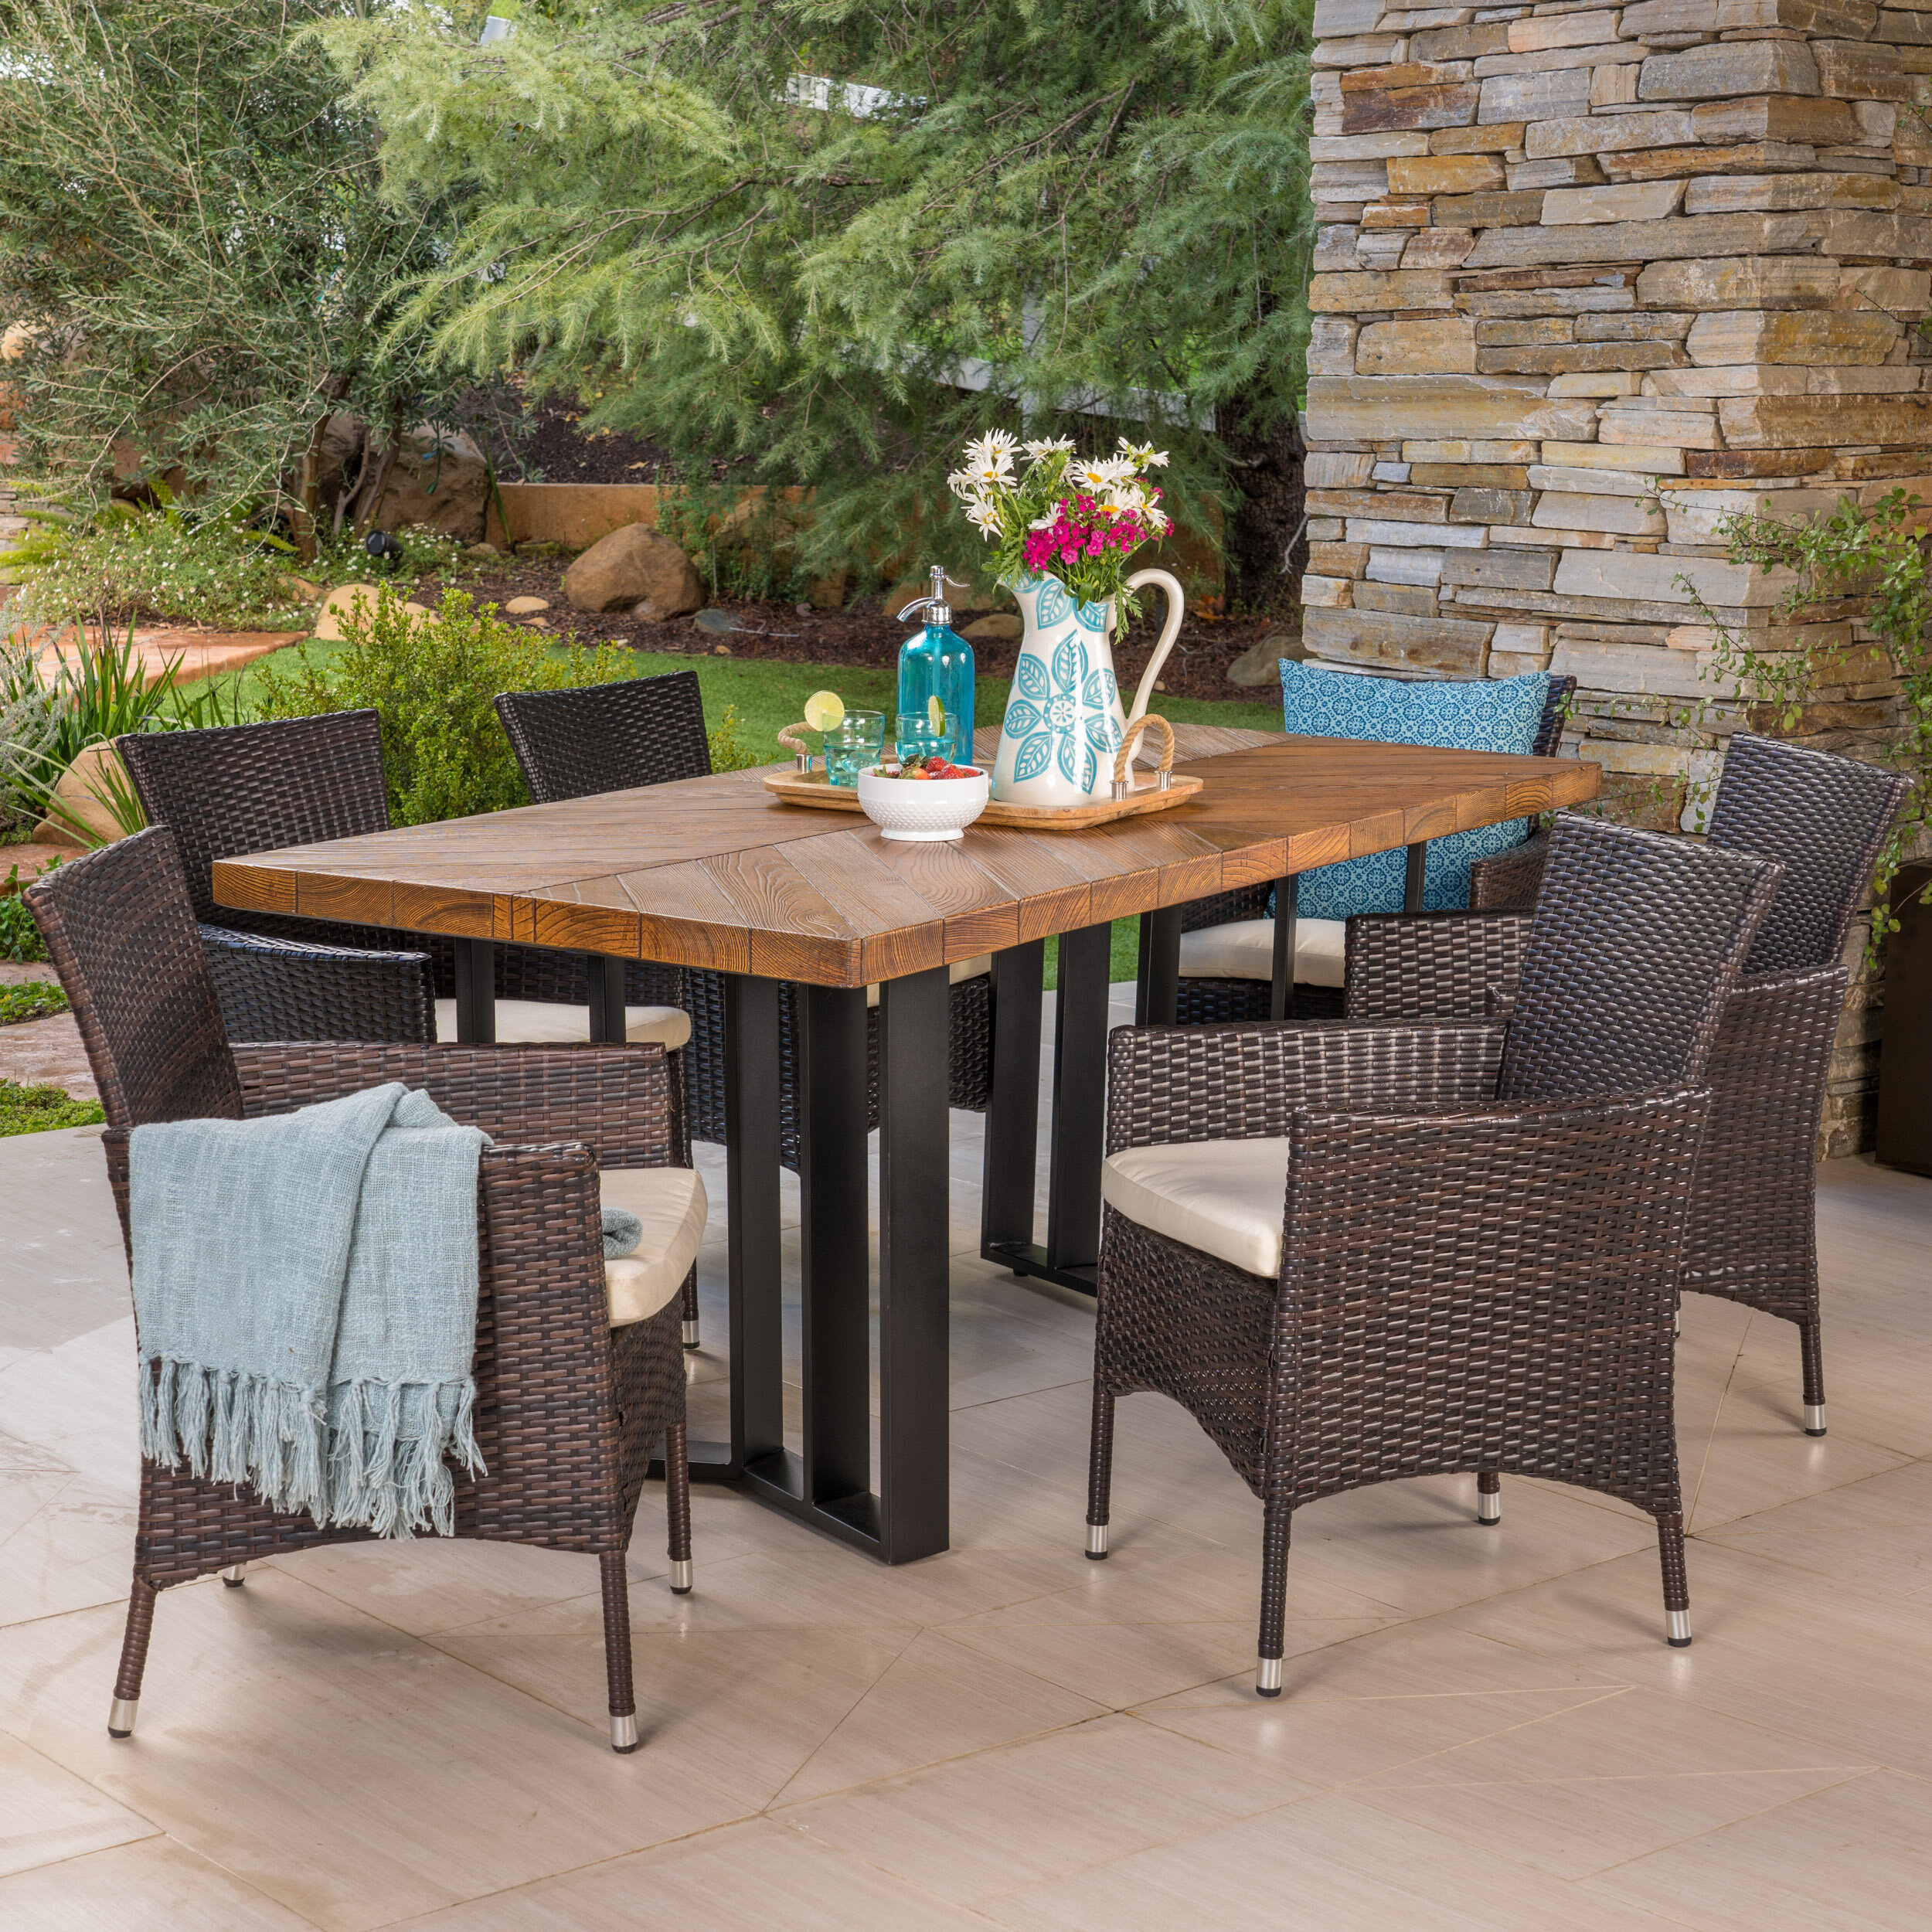 Stone Red Barrel Studio Patio Dining Sets You Ll Love In 2021 Wayfair